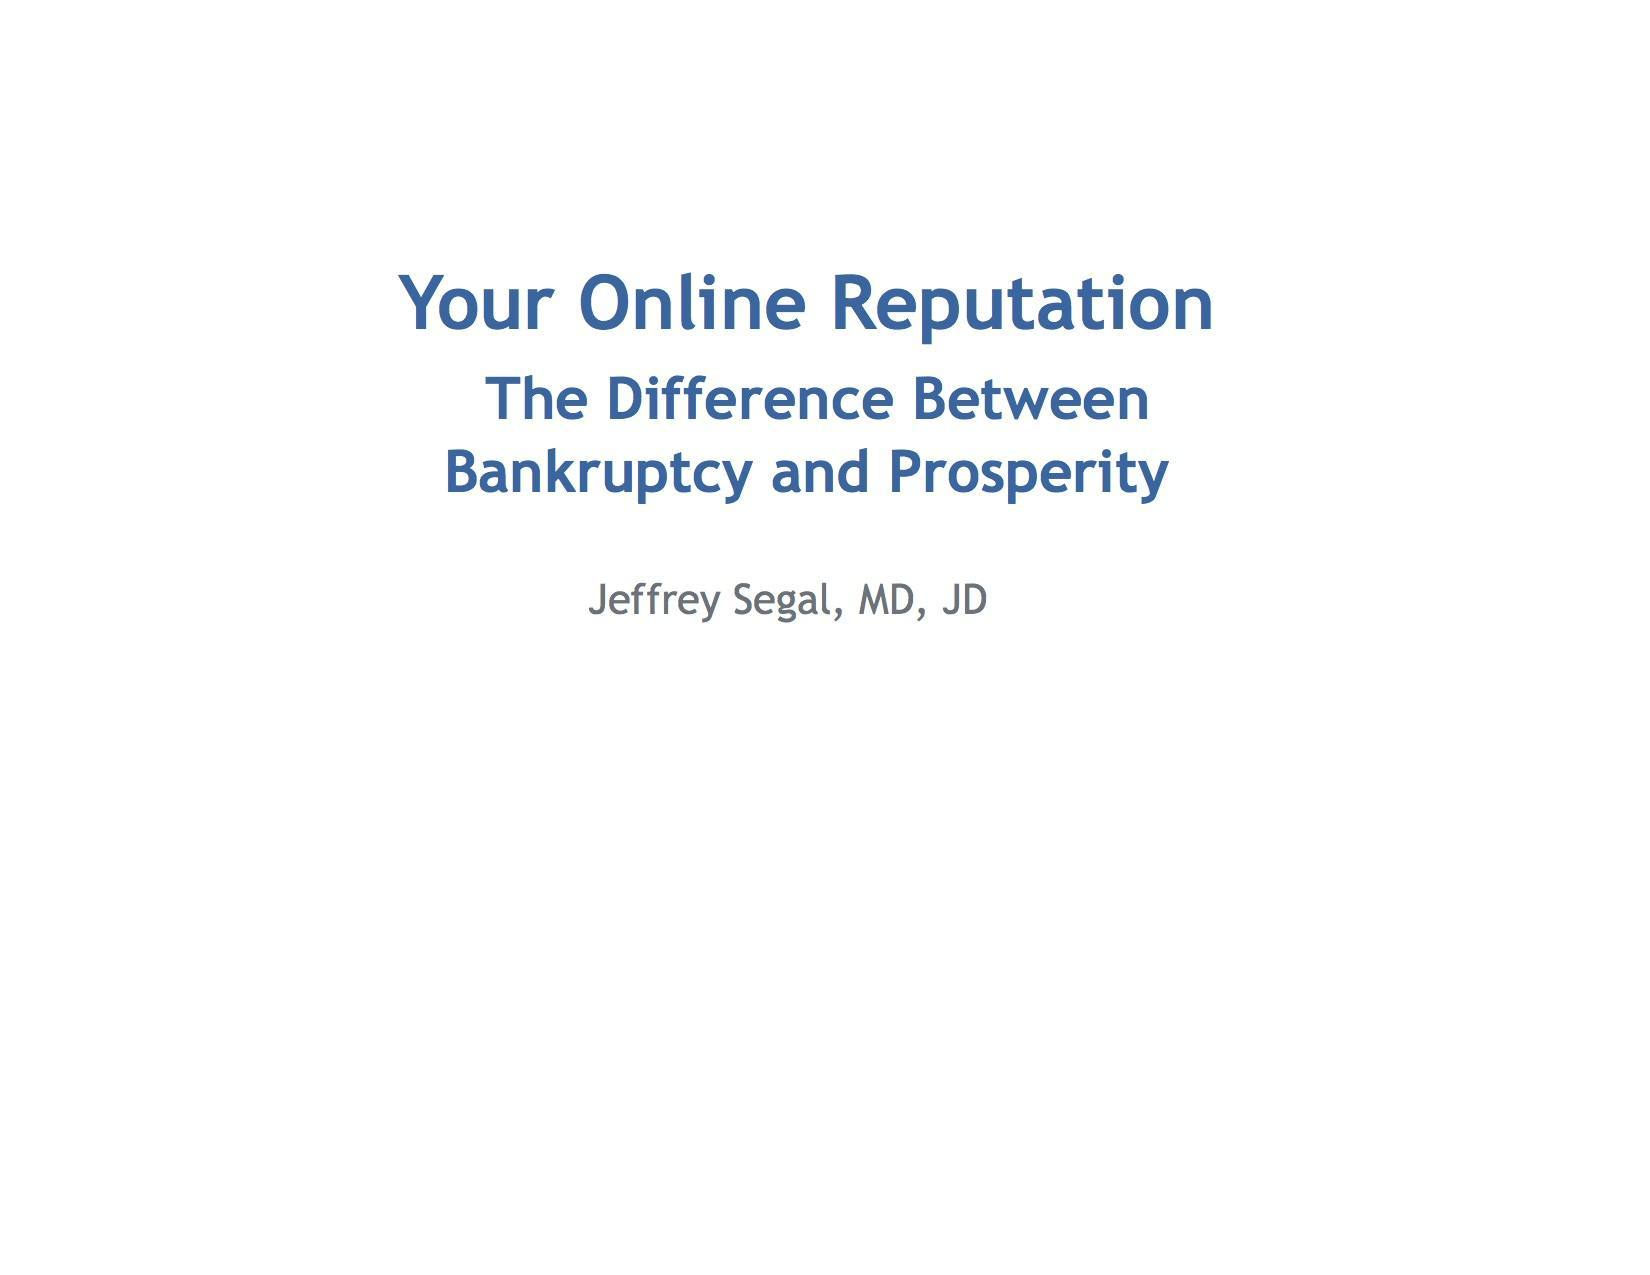 Online Reputation: The Difference Between Success and Bankruptcy